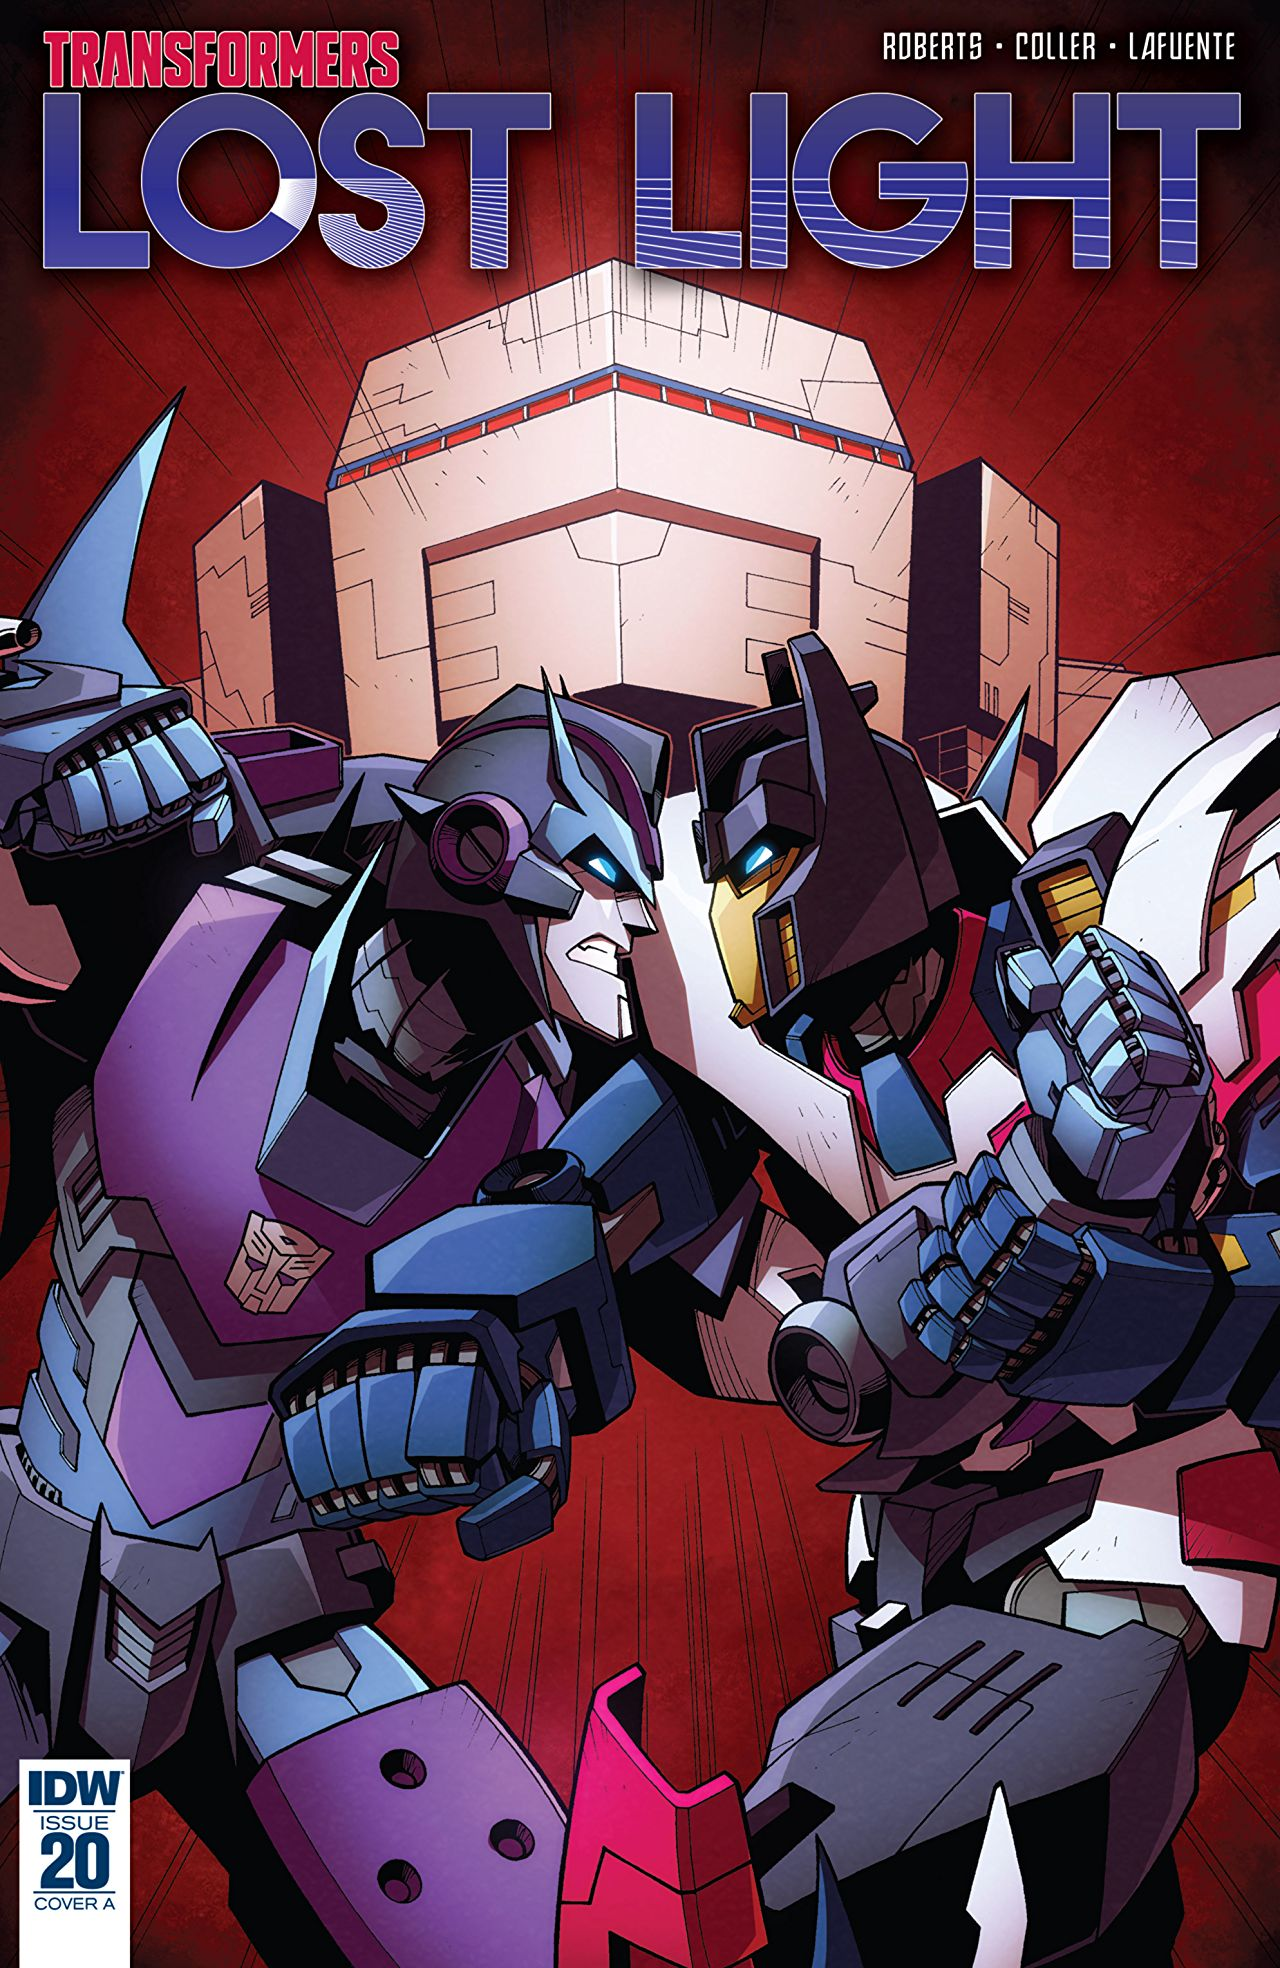 Transformers: Lost Light #20 Review